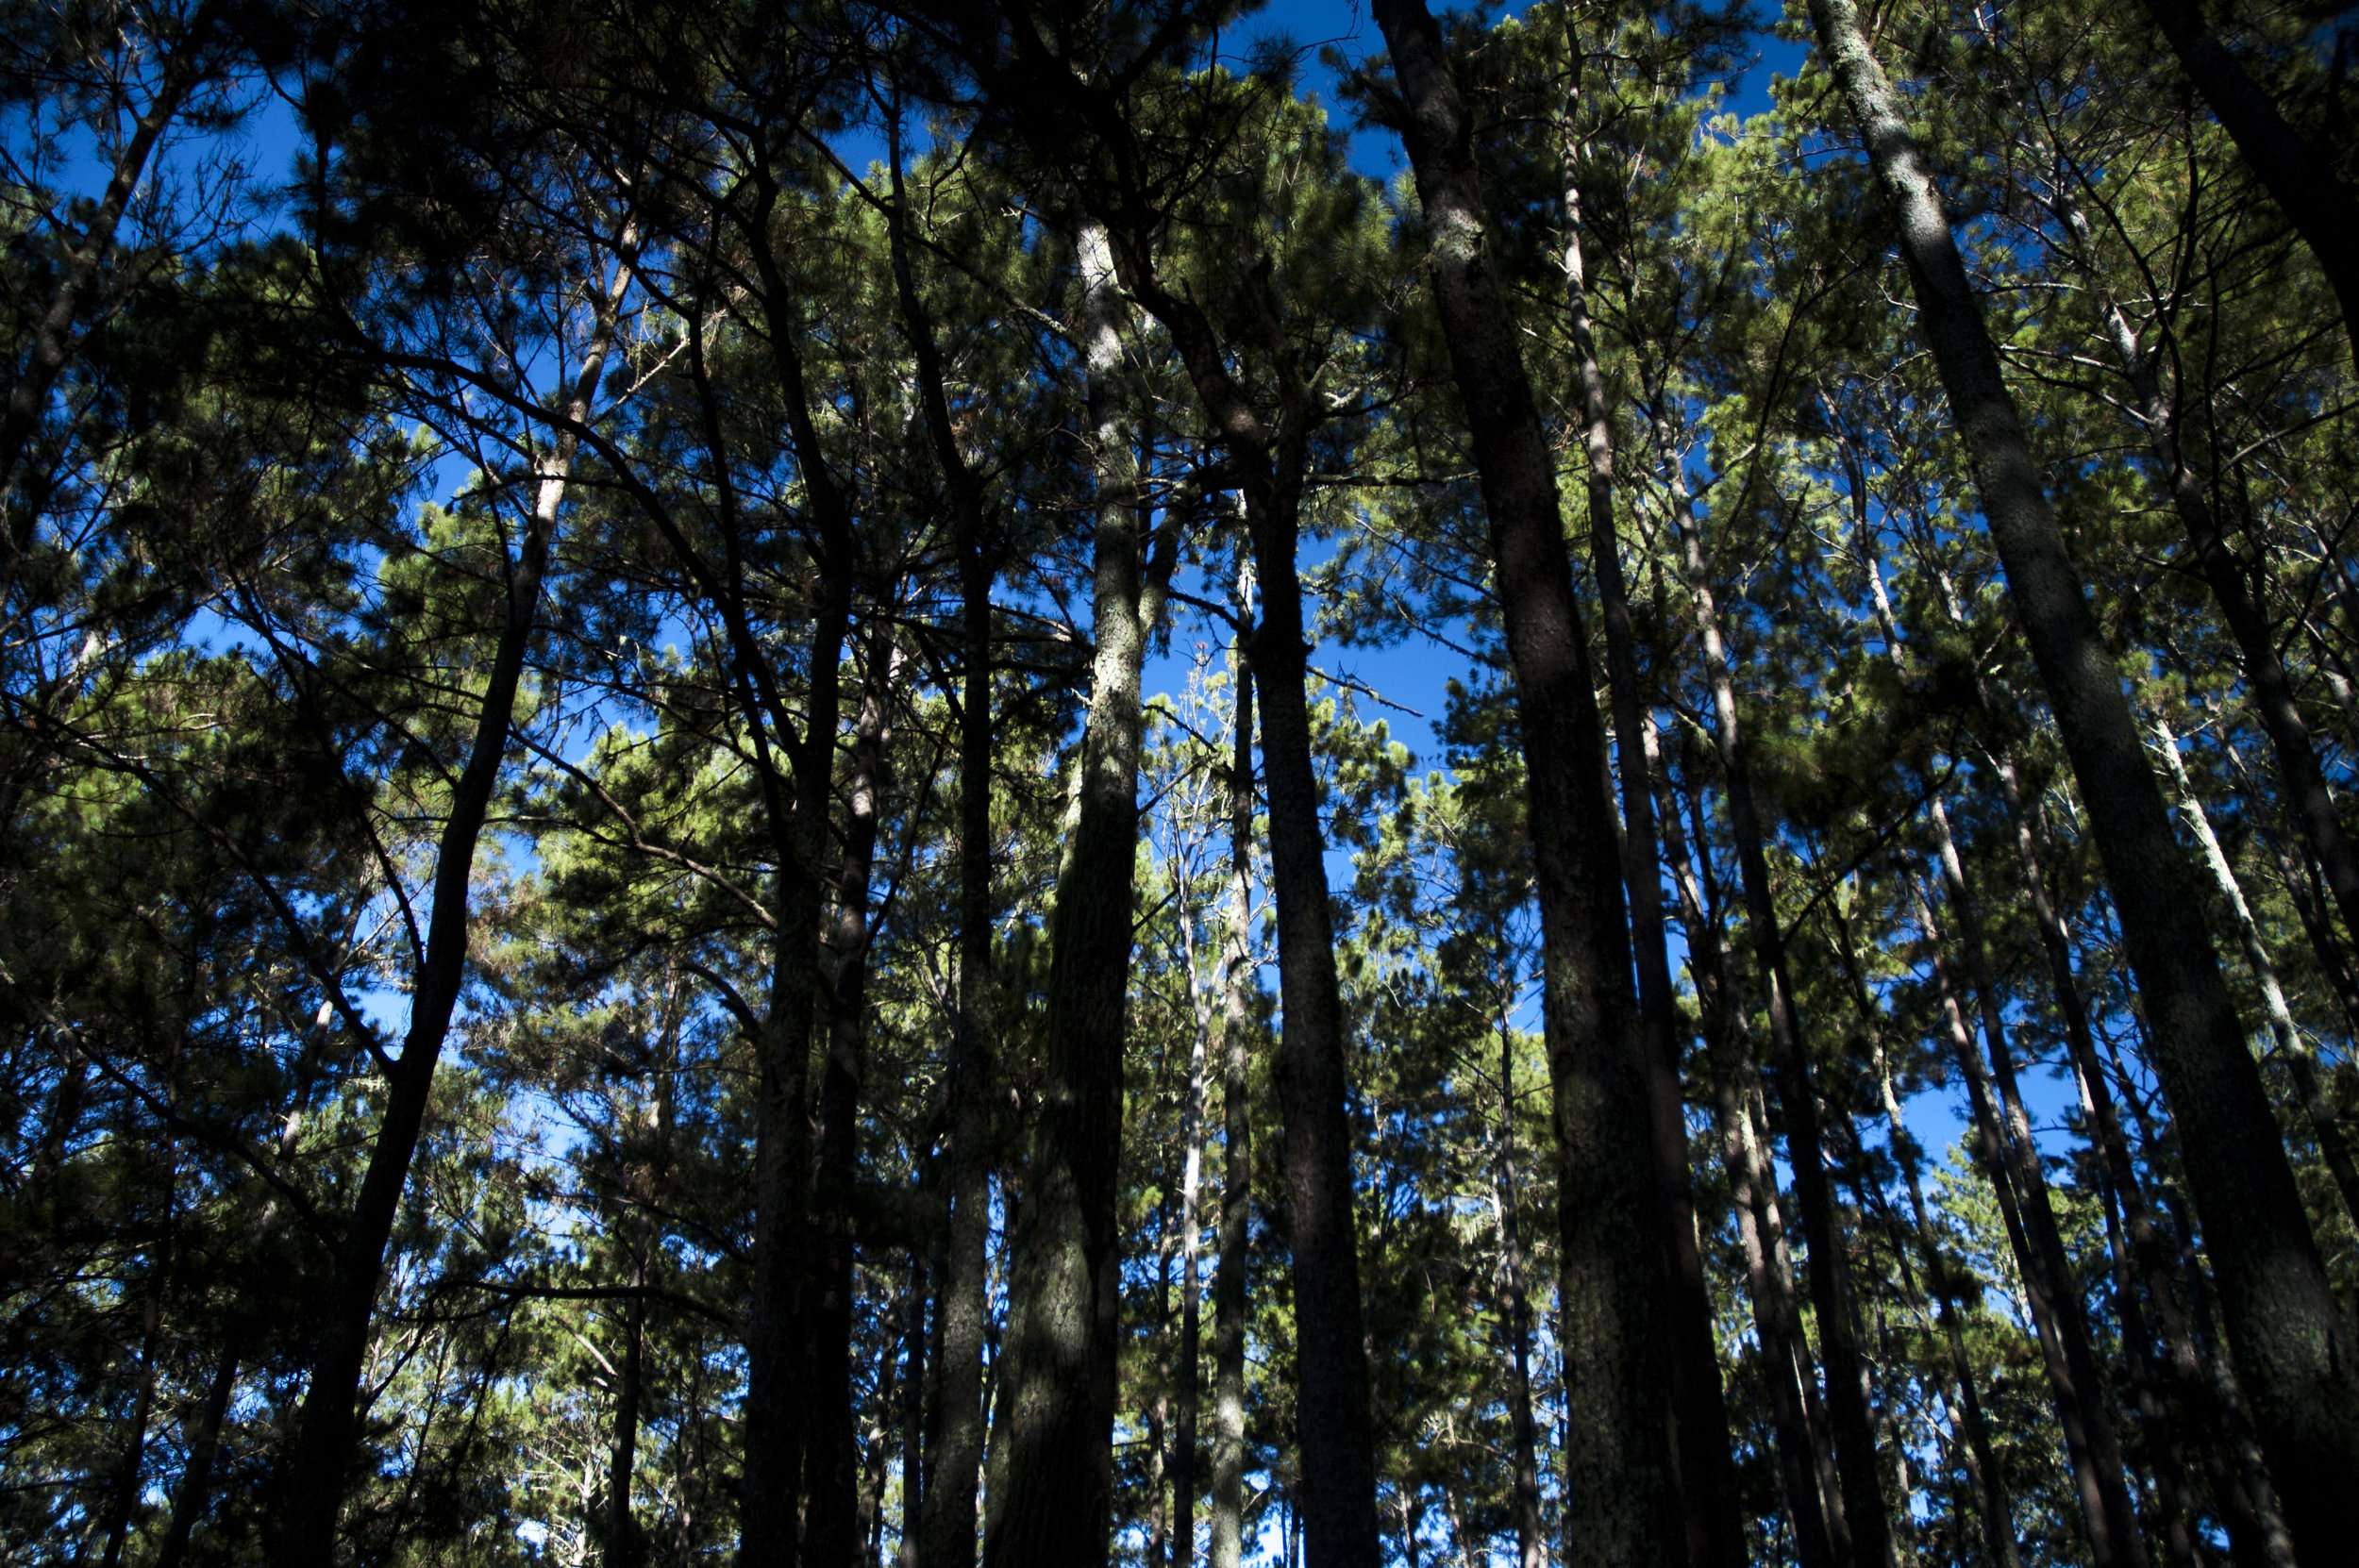 Pine forest, perfect for an early morning trek